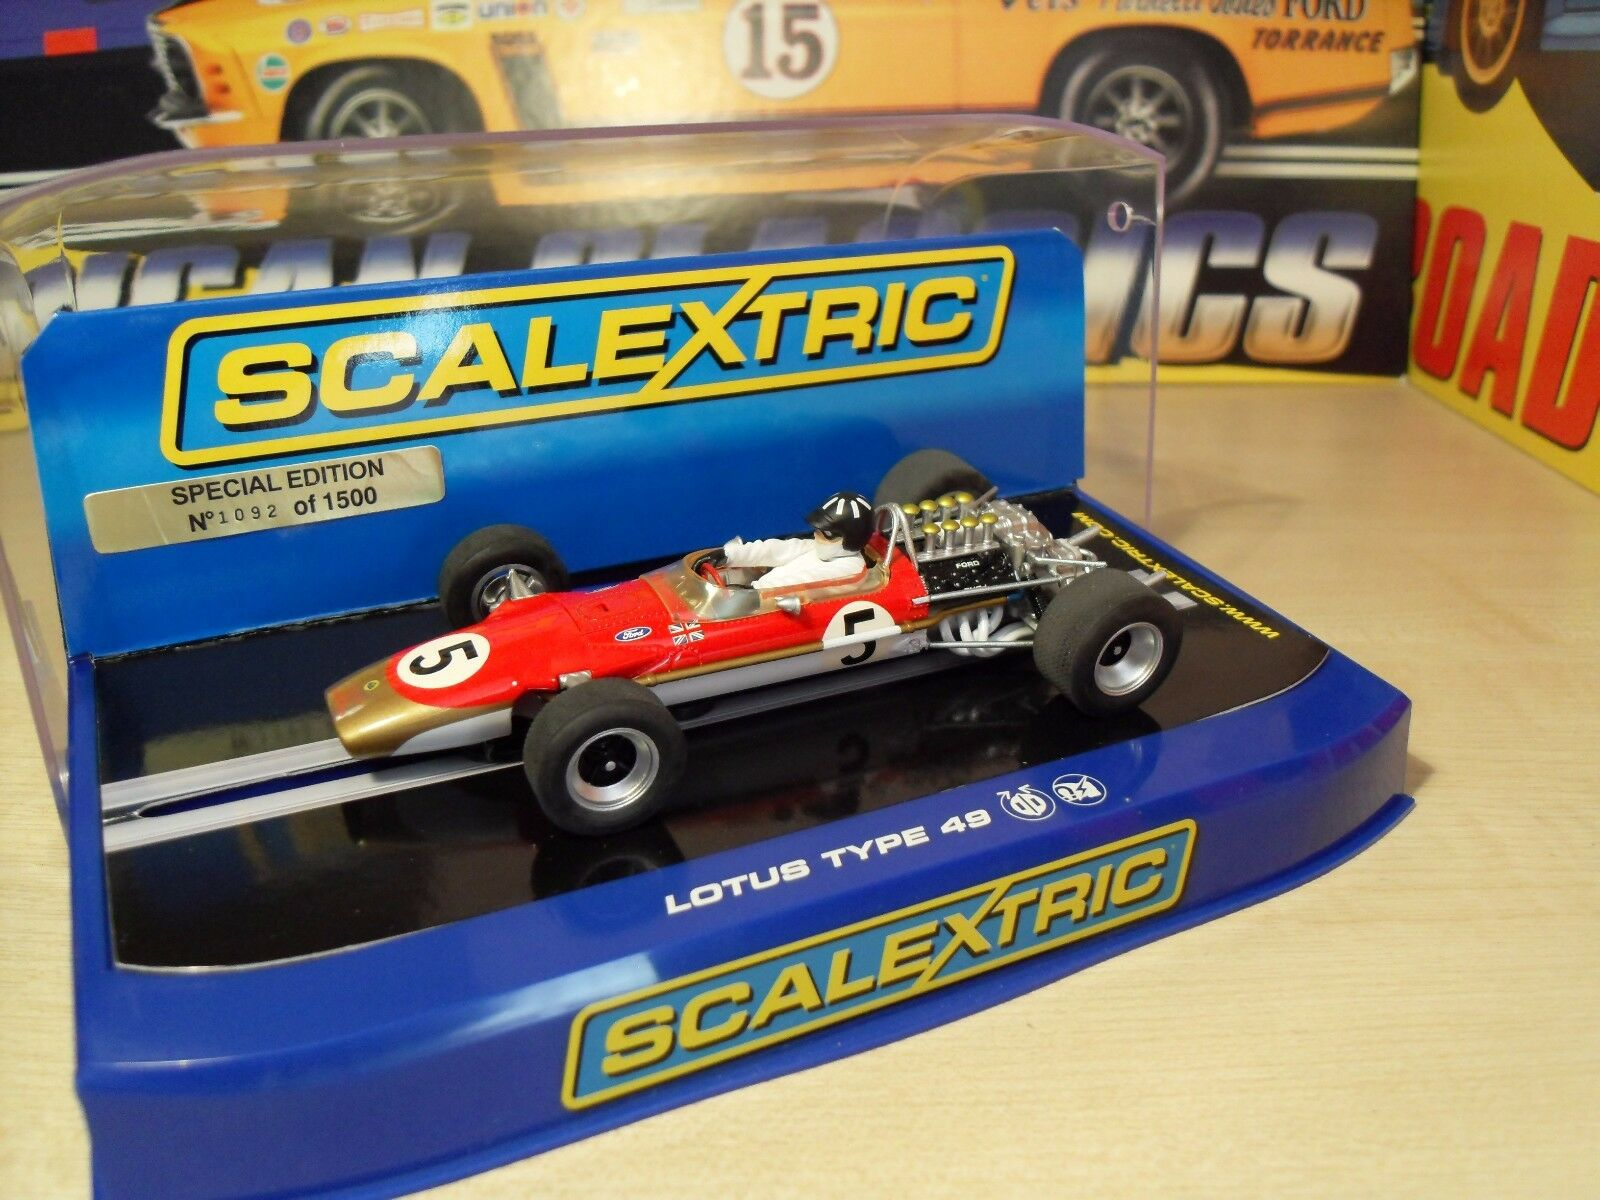 Scalextric C2964 Lotus 49 'Graham Hill - Limited Ed' - Brand New in Box.